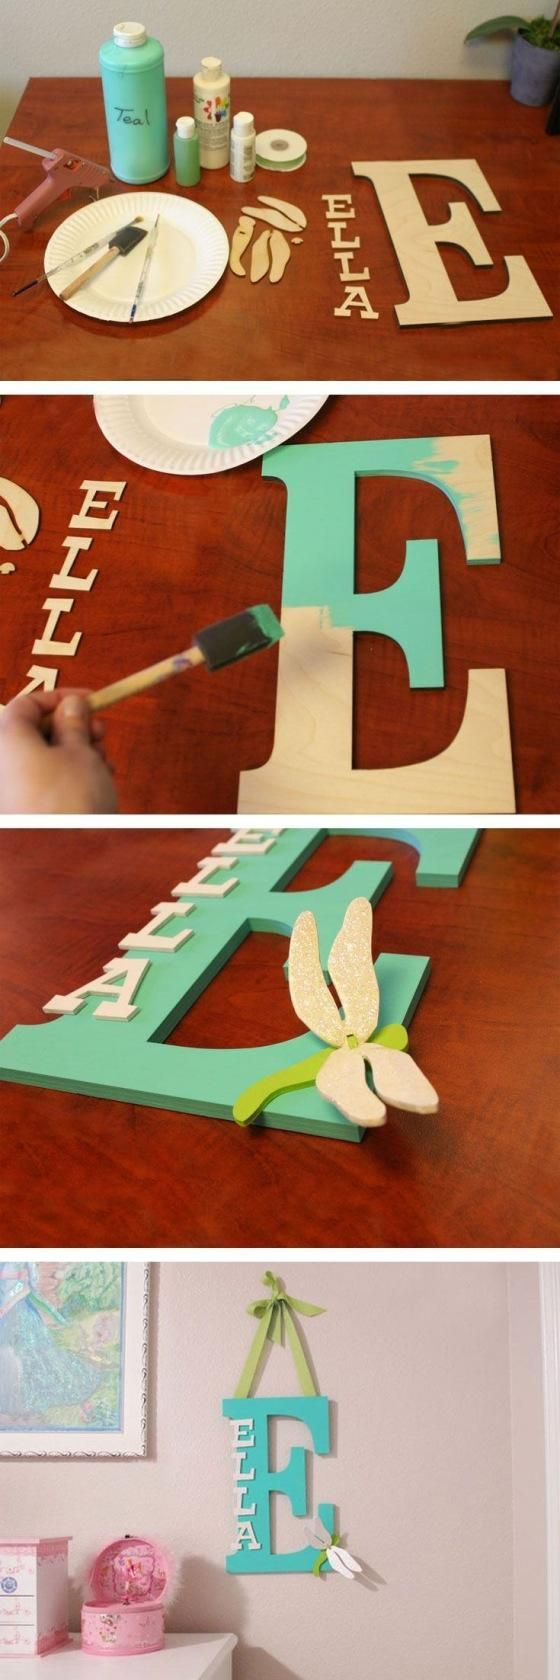 Letter ideas for girls' room